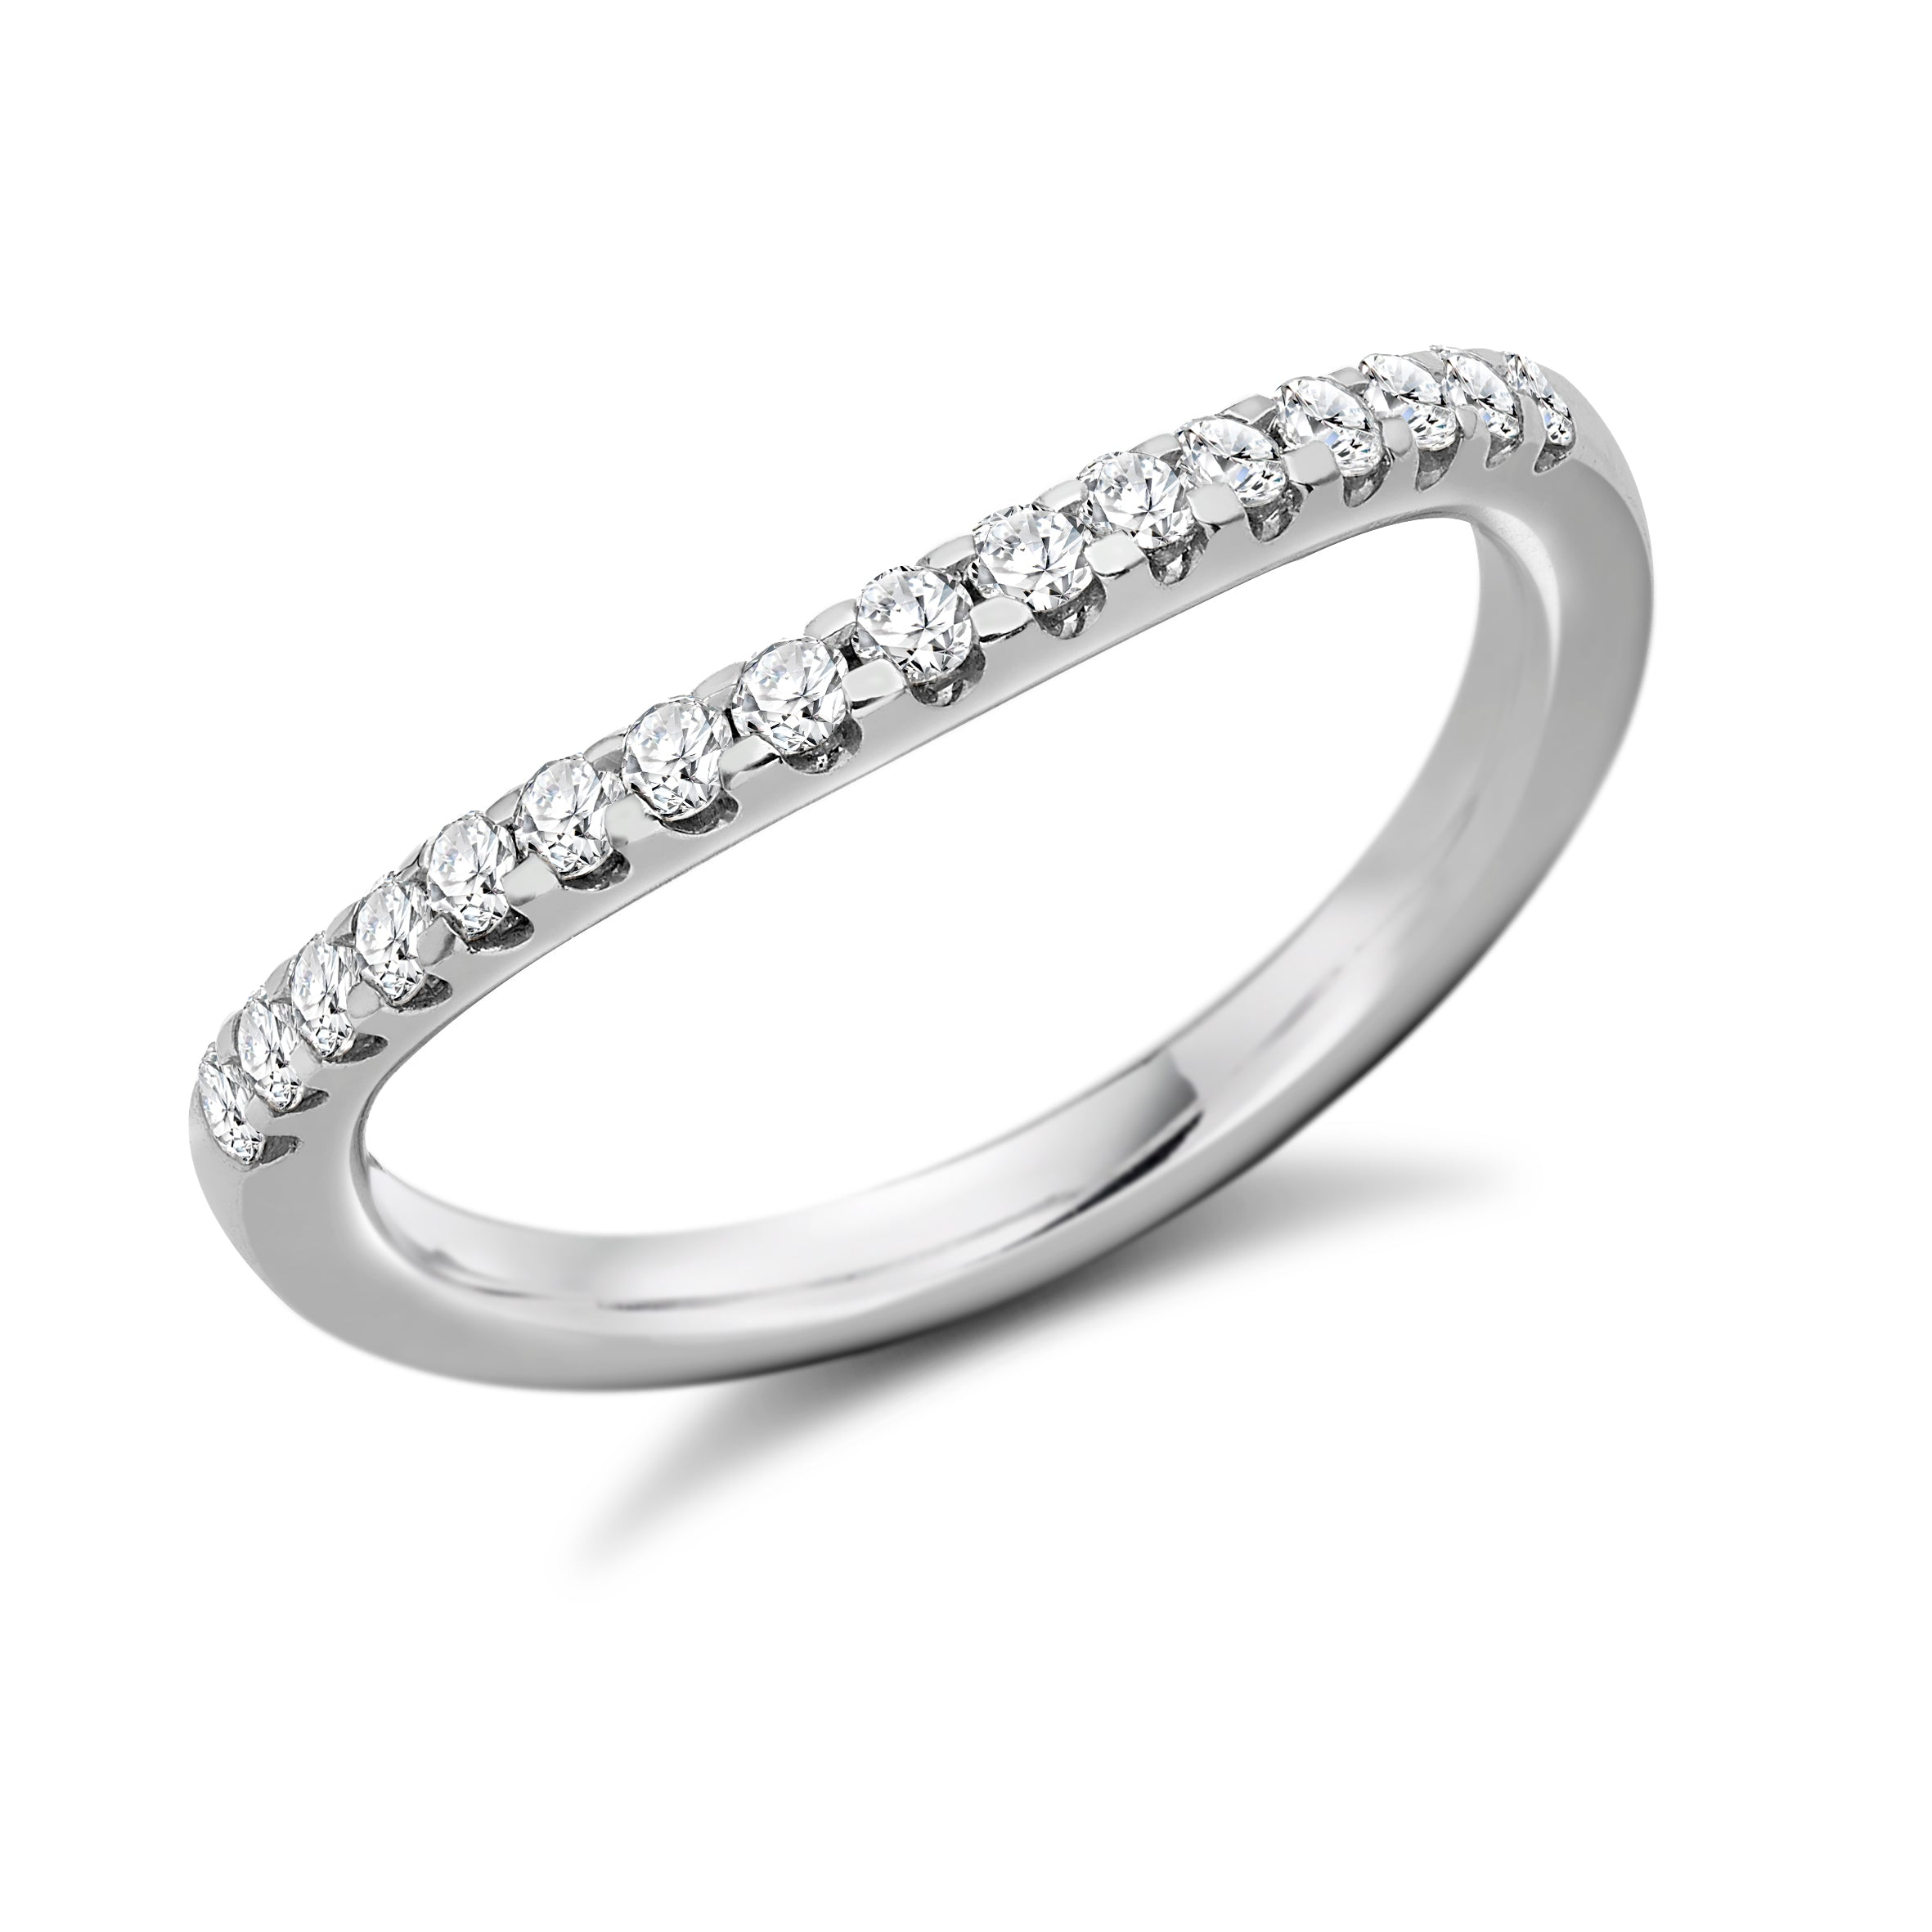 0.3ct Round Brilliant Cut Diamonds Curved Shaped Band - Eternity Ring - (Home Try-On)